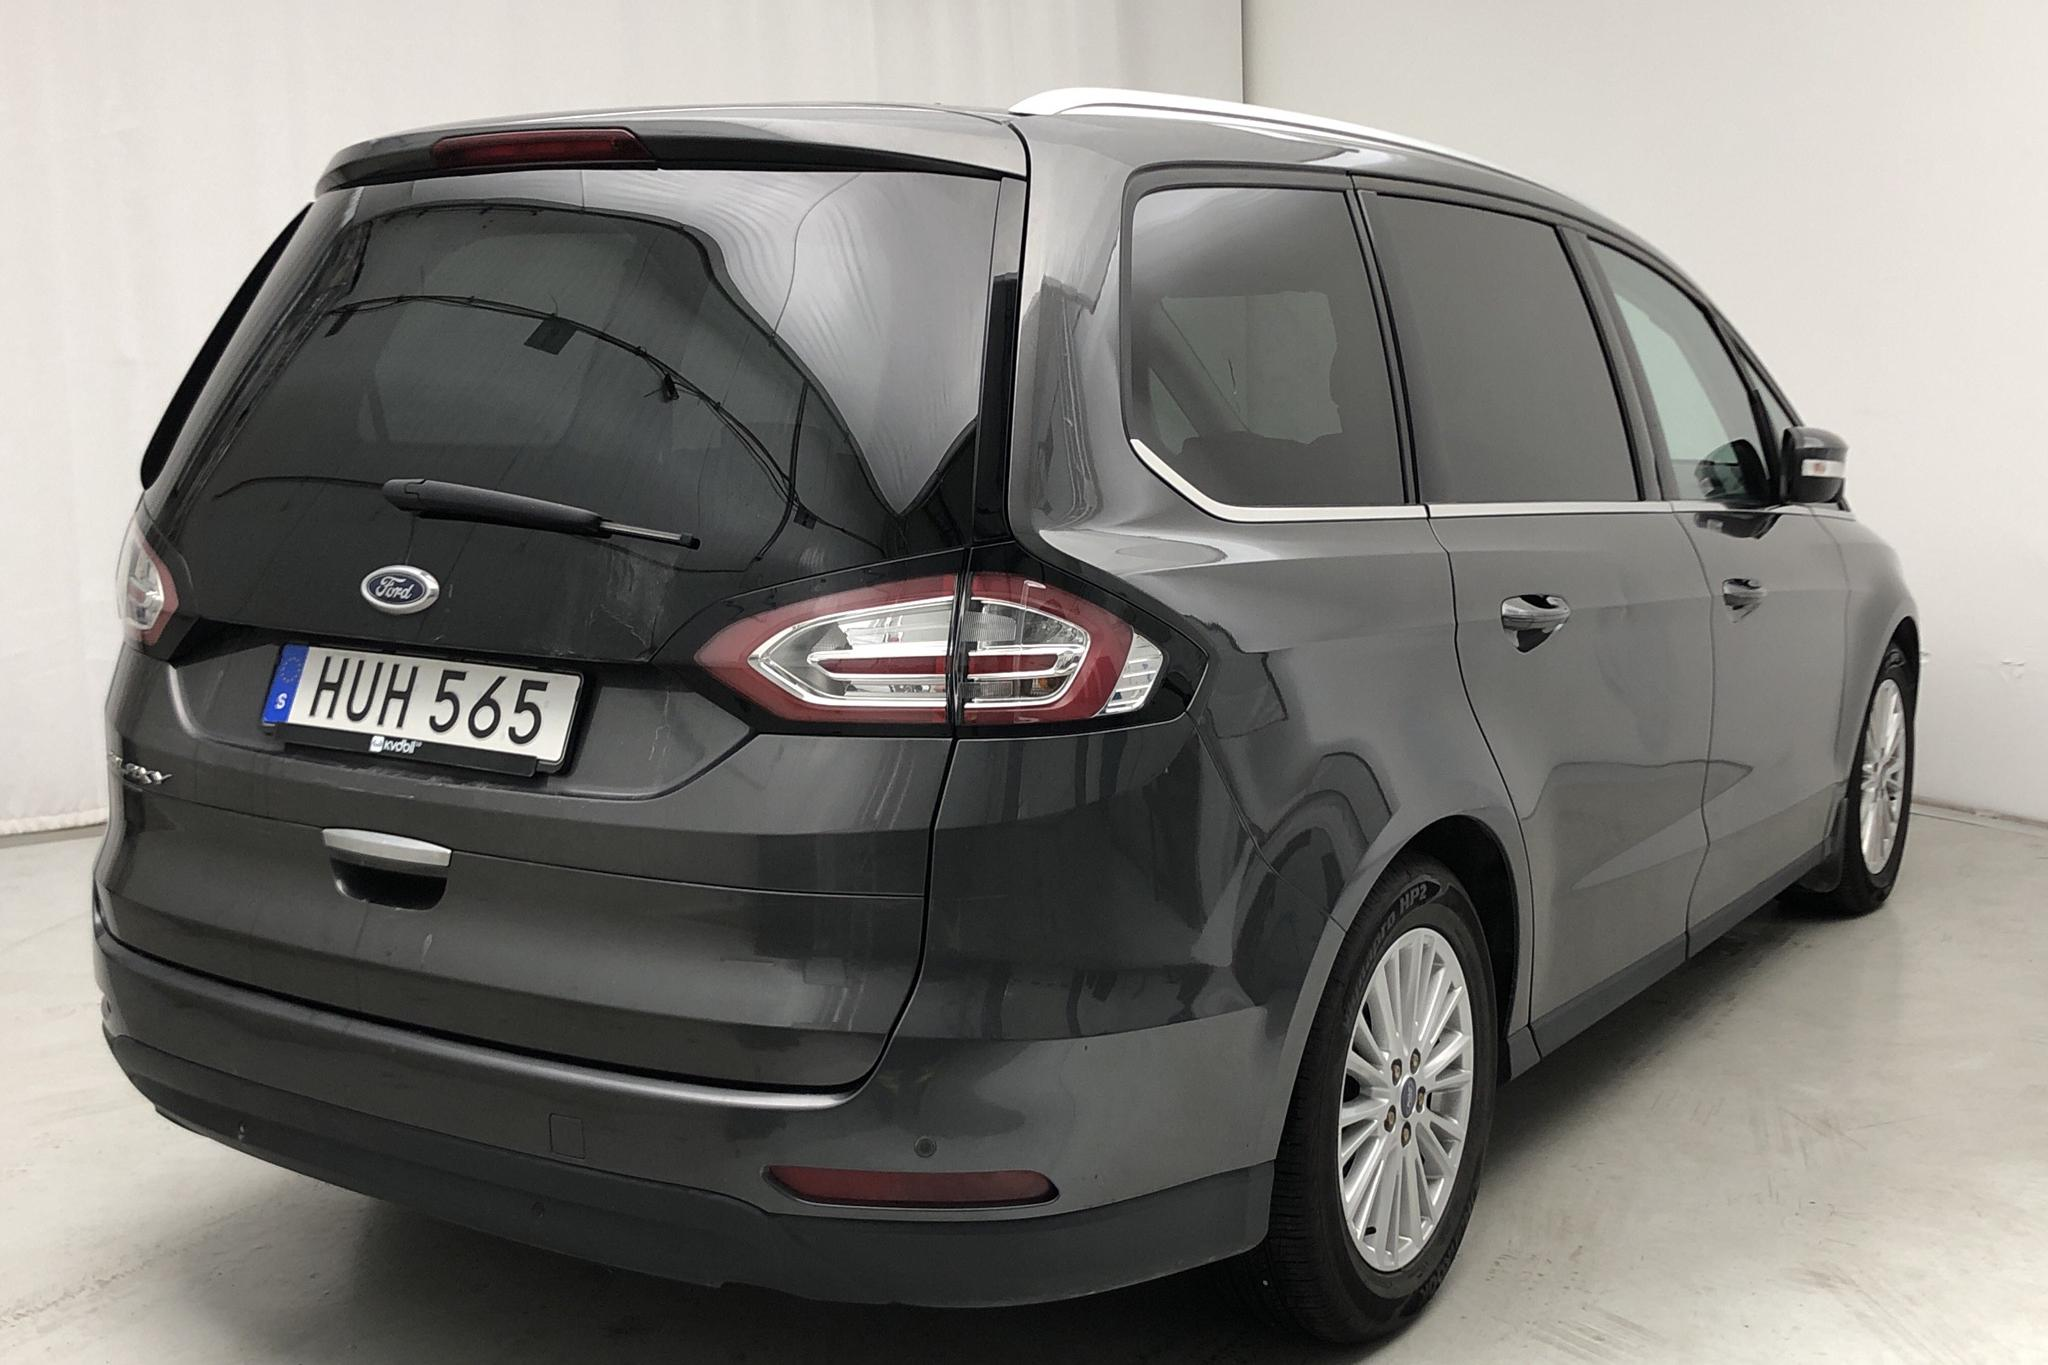 Ford Galaxy 2.0 TDCI AWD (180hk) - 99 000 km - Automatic - gray - 2015